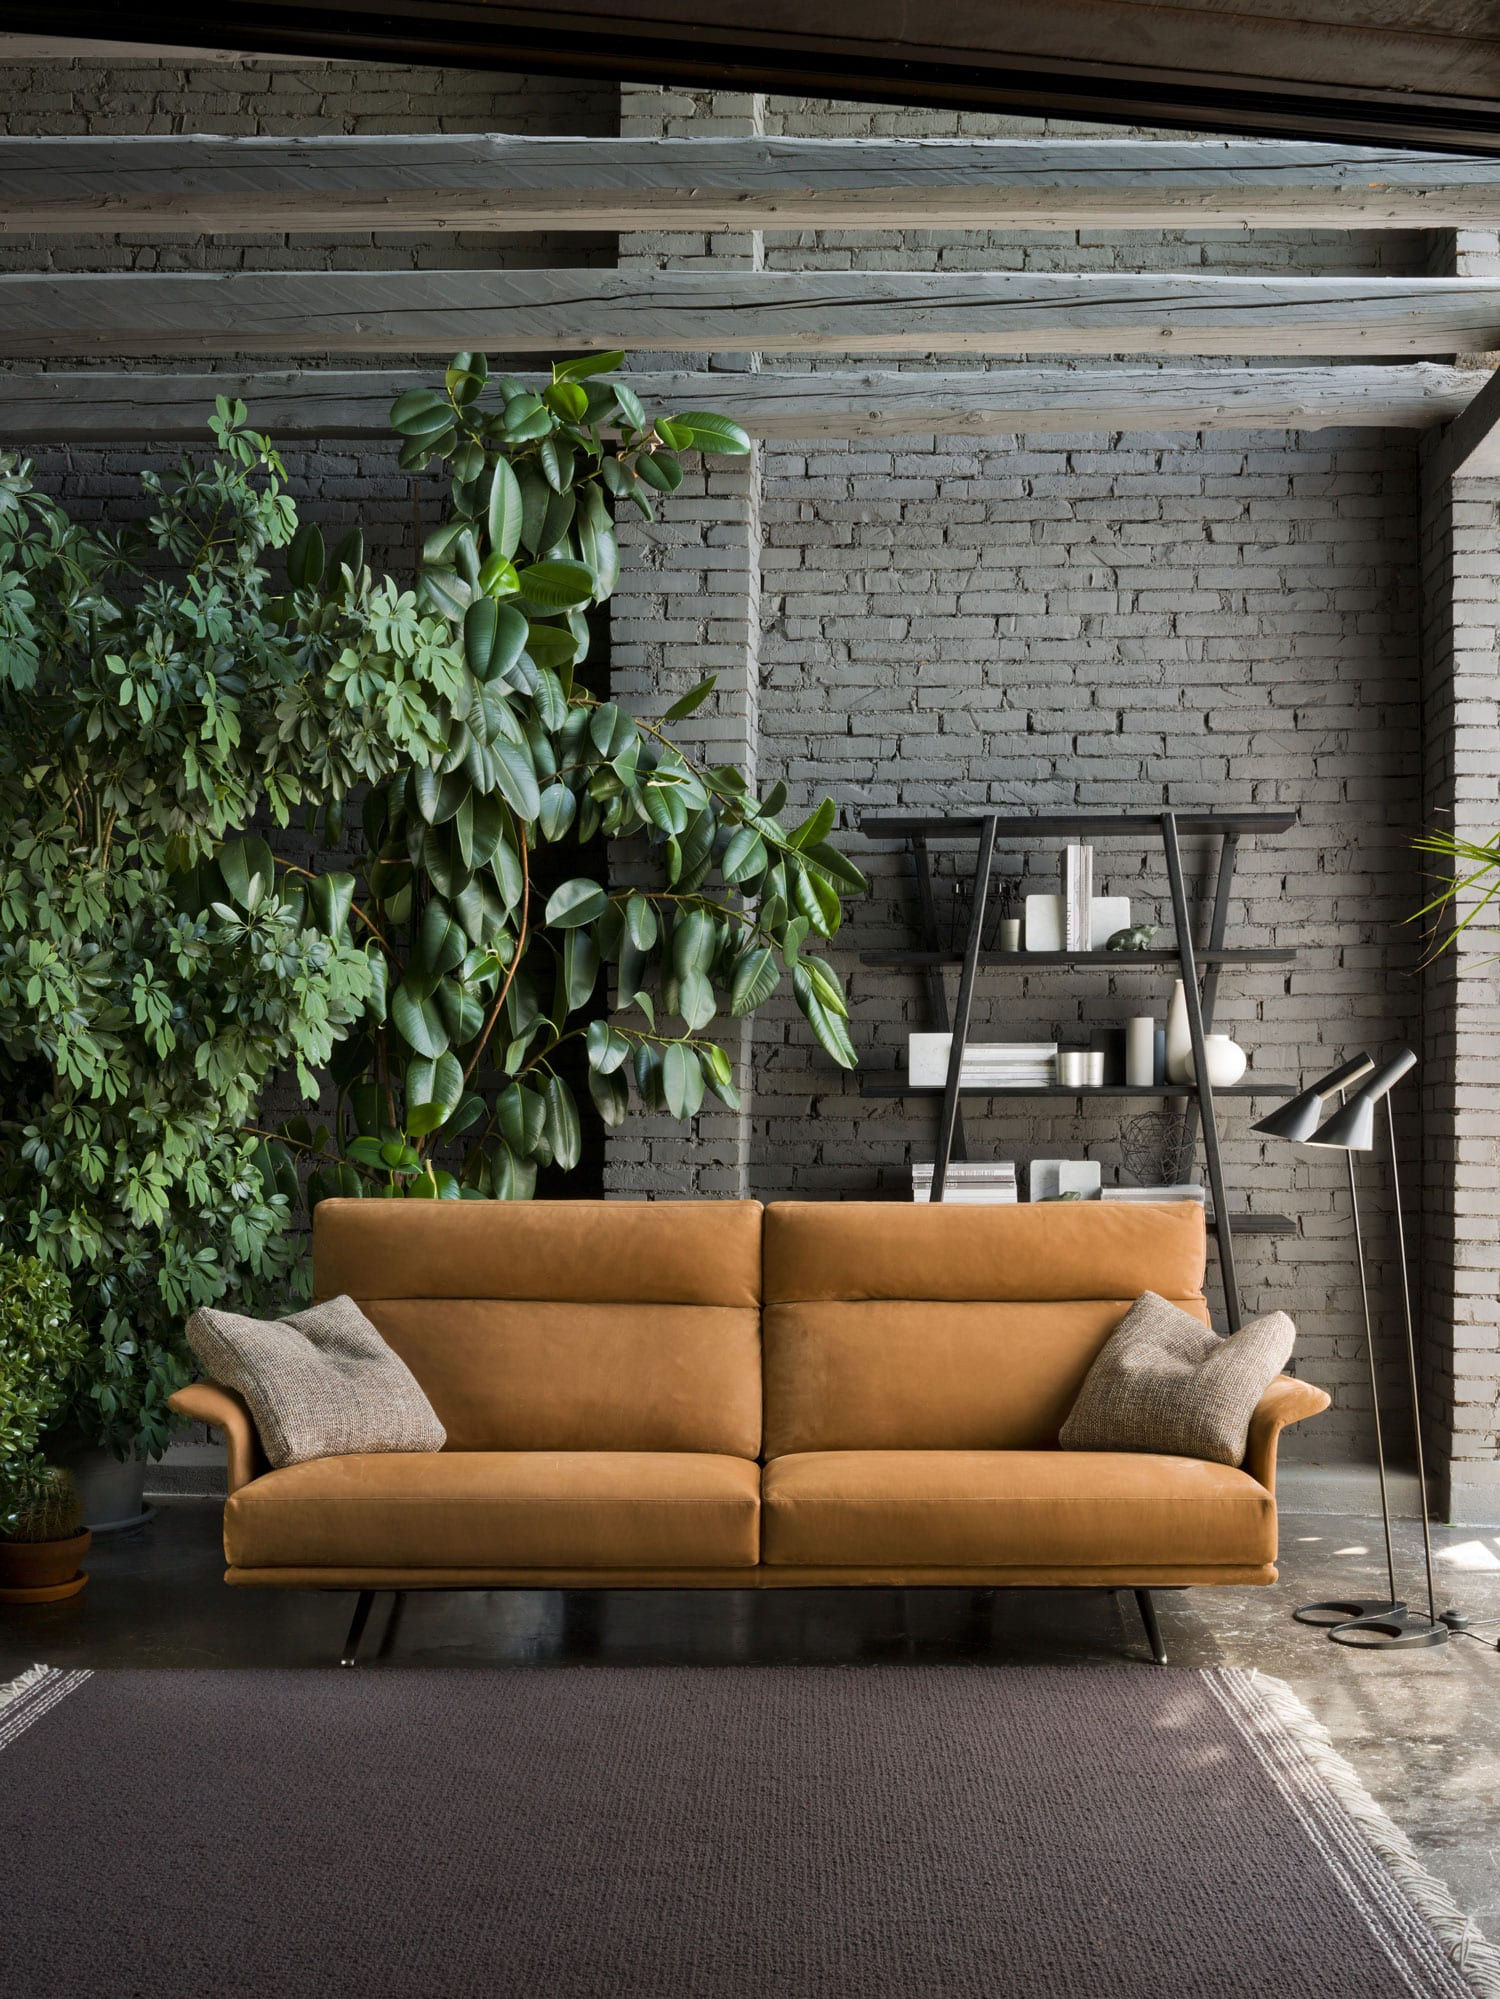 Nilson Sofa by Lievore Altherr for Verzelloni at Imm Cologne 2019   Yellowtrace